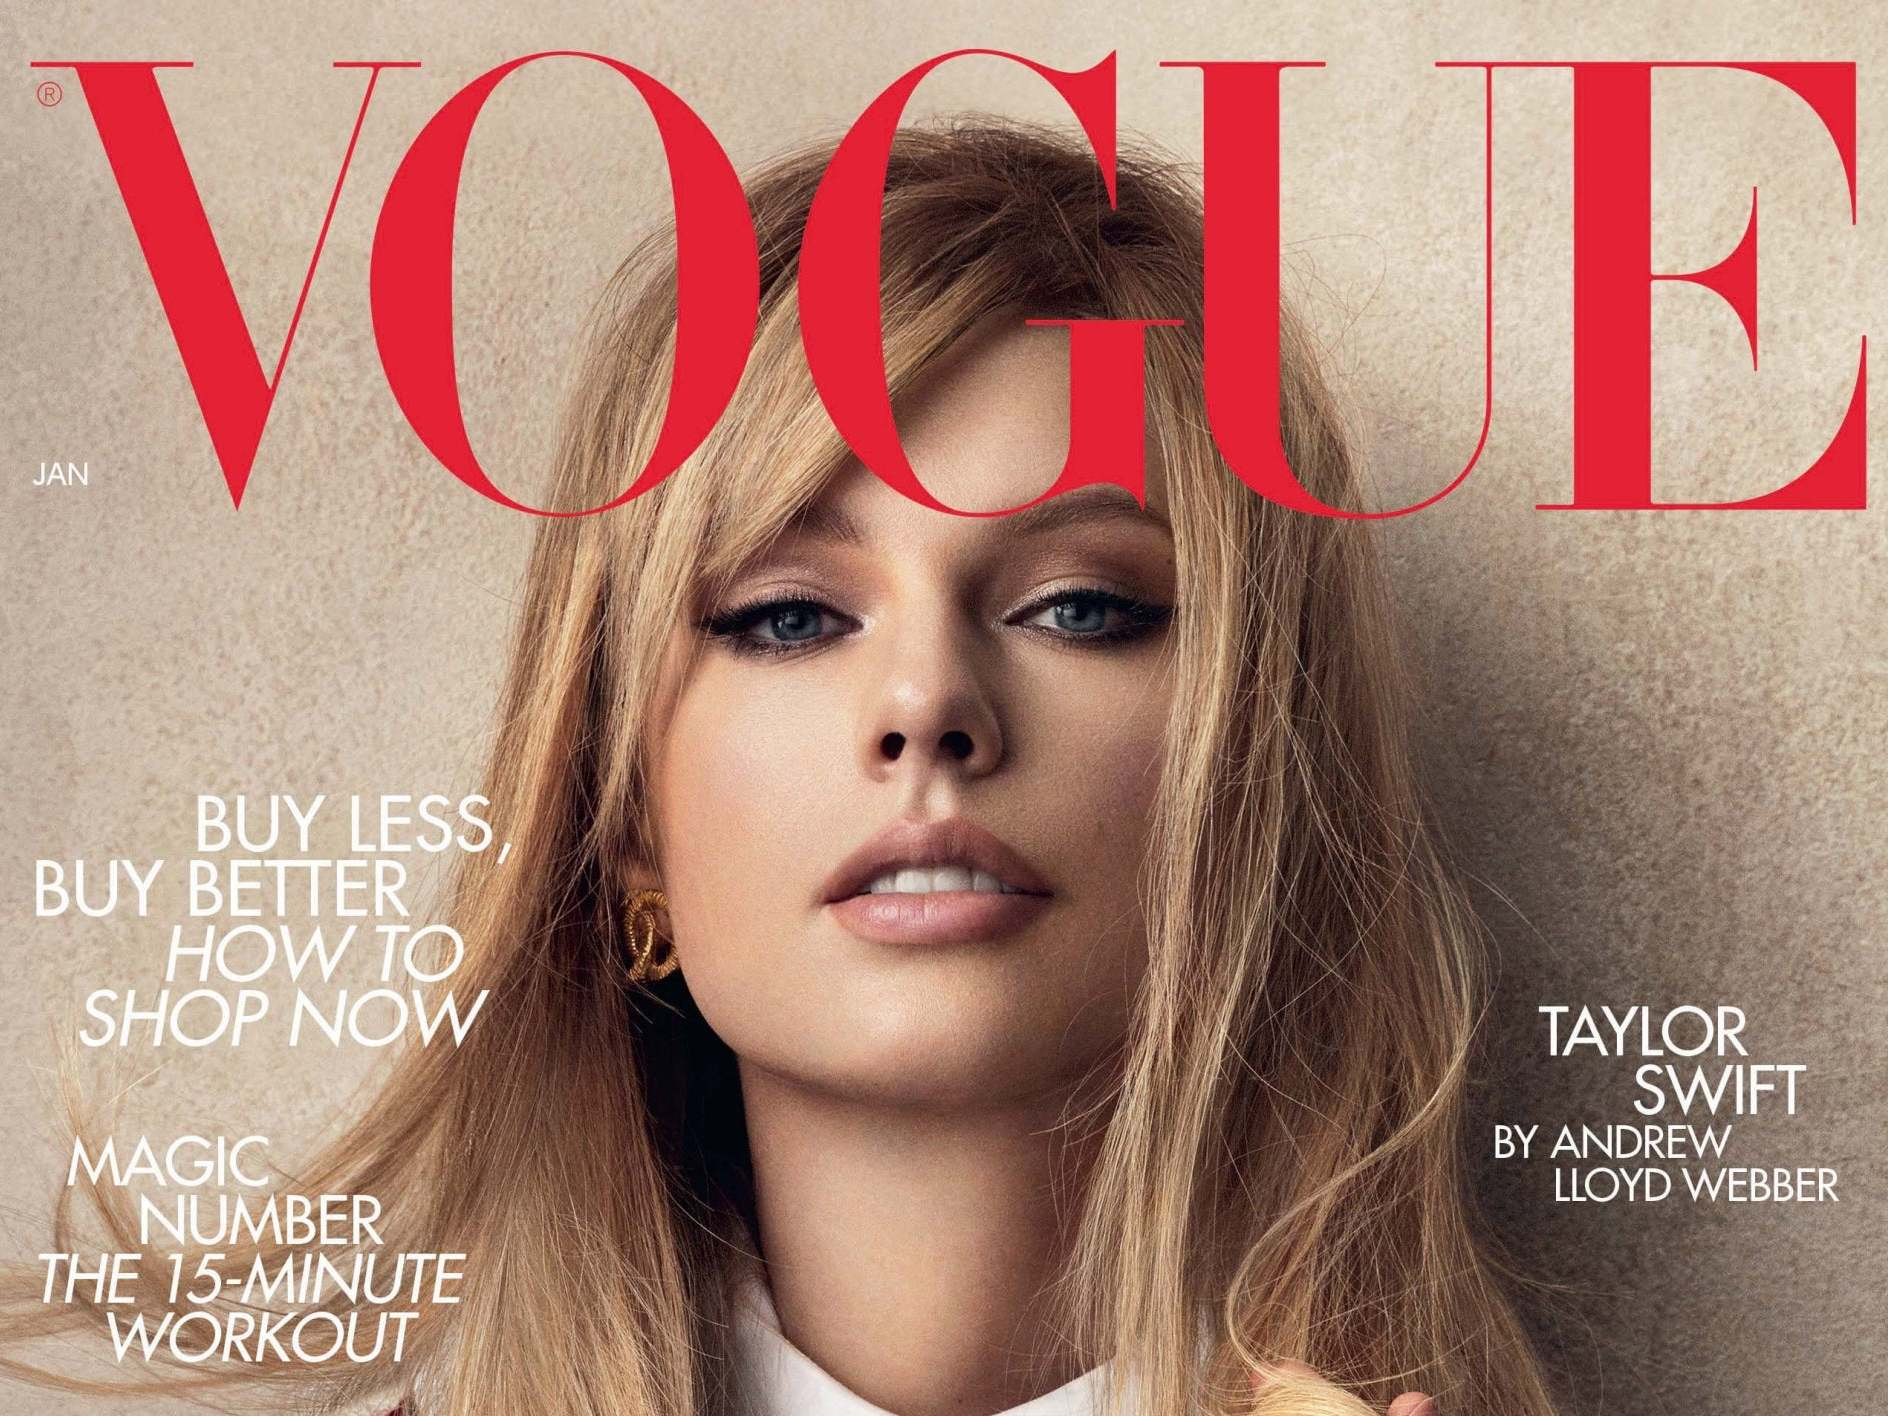 Taylor Swift wears vintage Chanel on Vogue cover to 'contribute to sustainability'